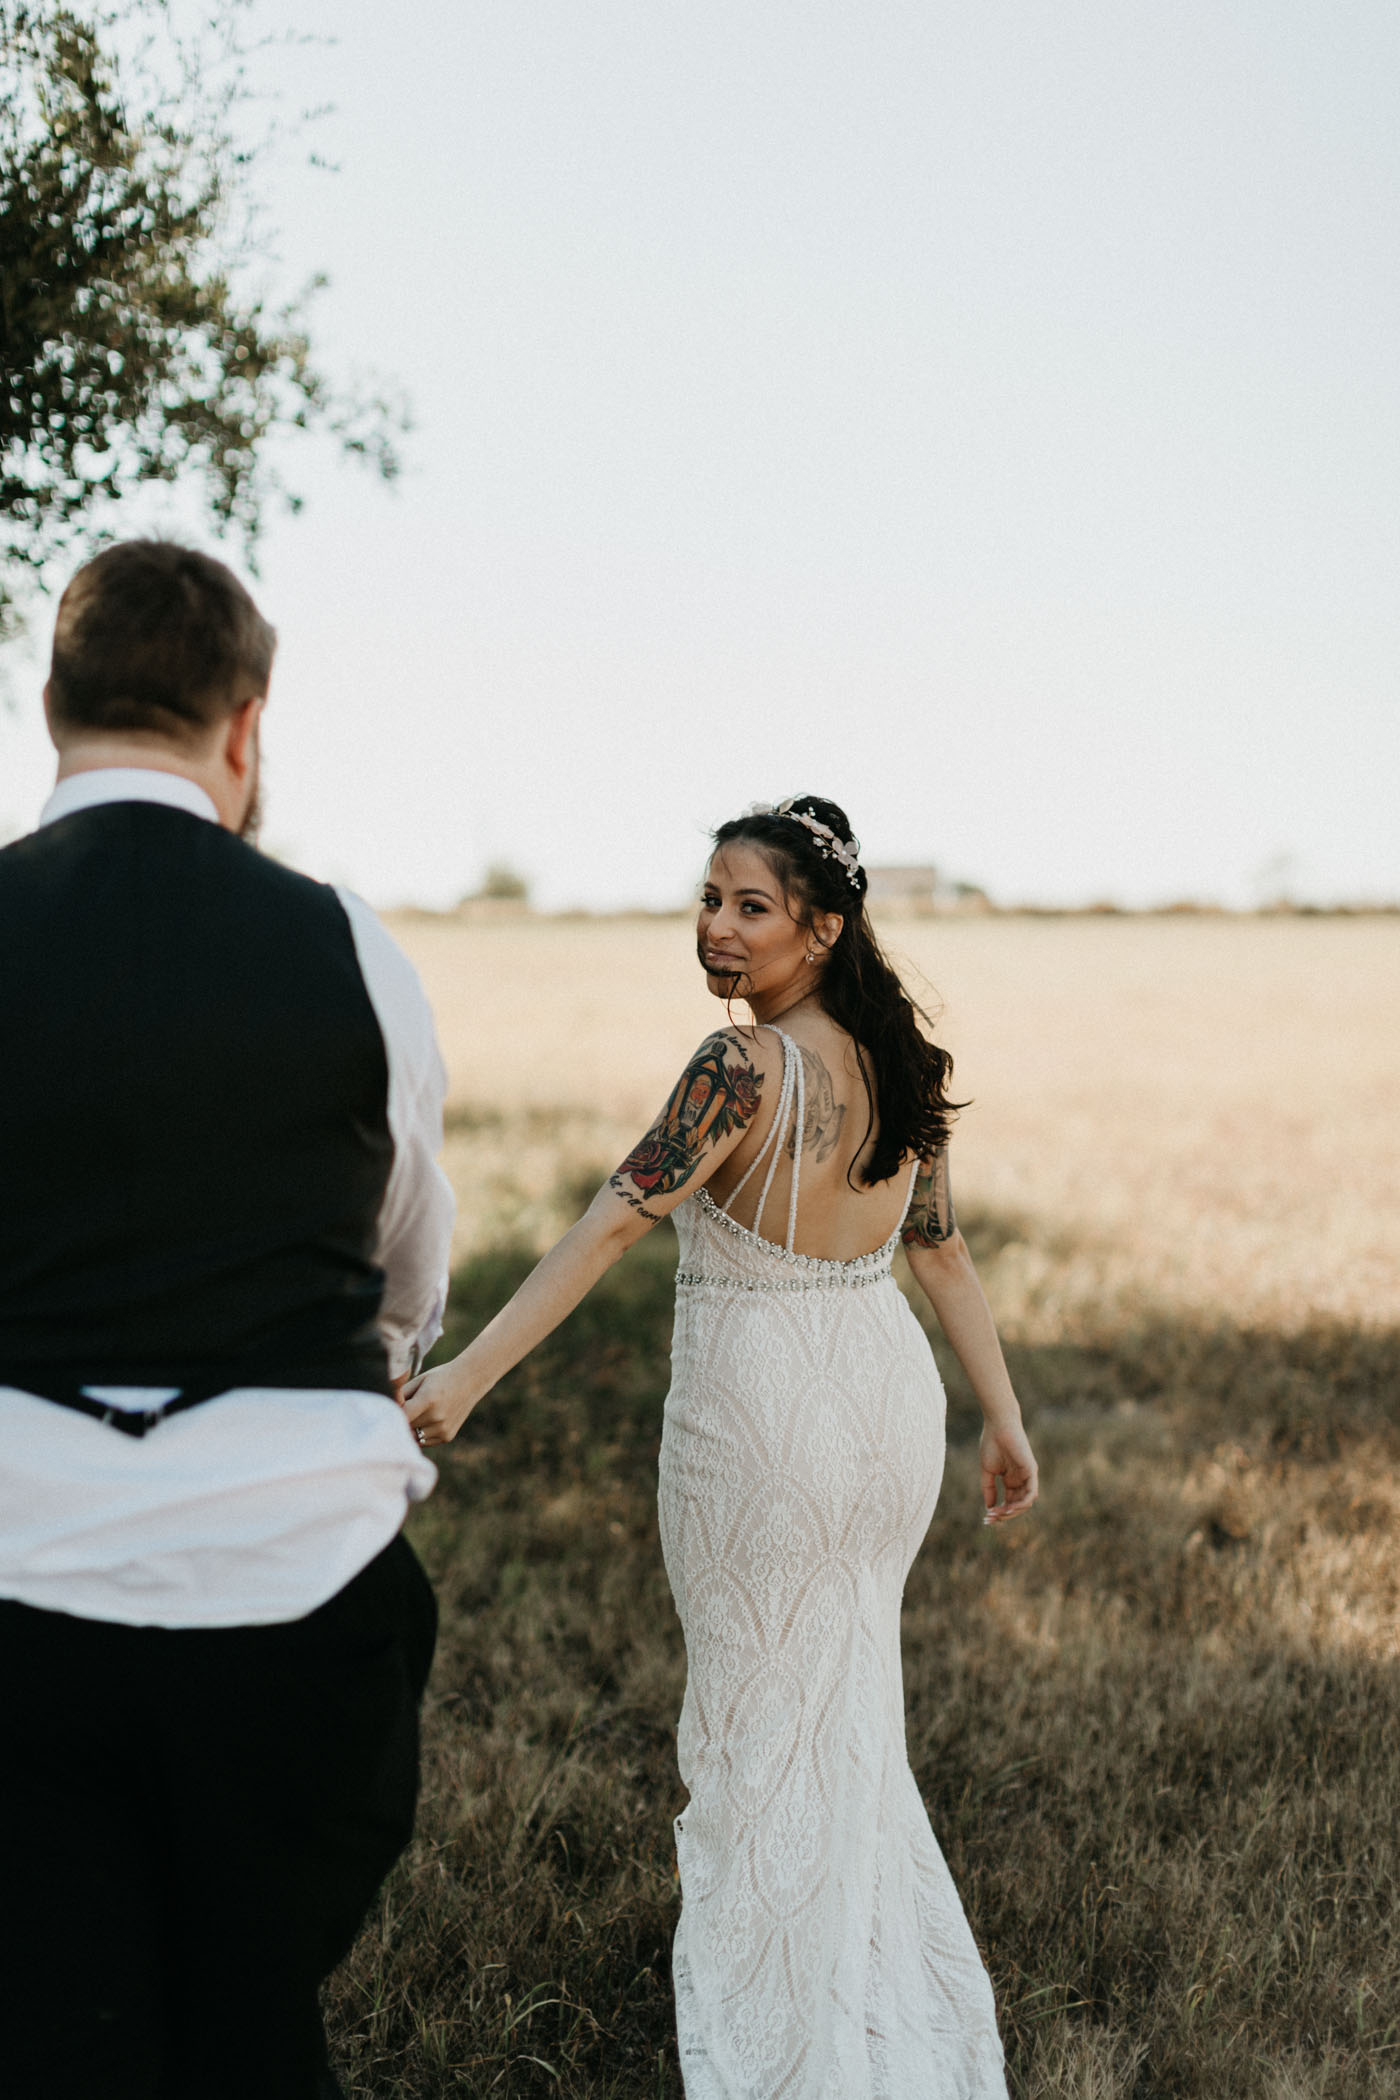 Bride and groom walking and holding hands in a field after wedding ceremony